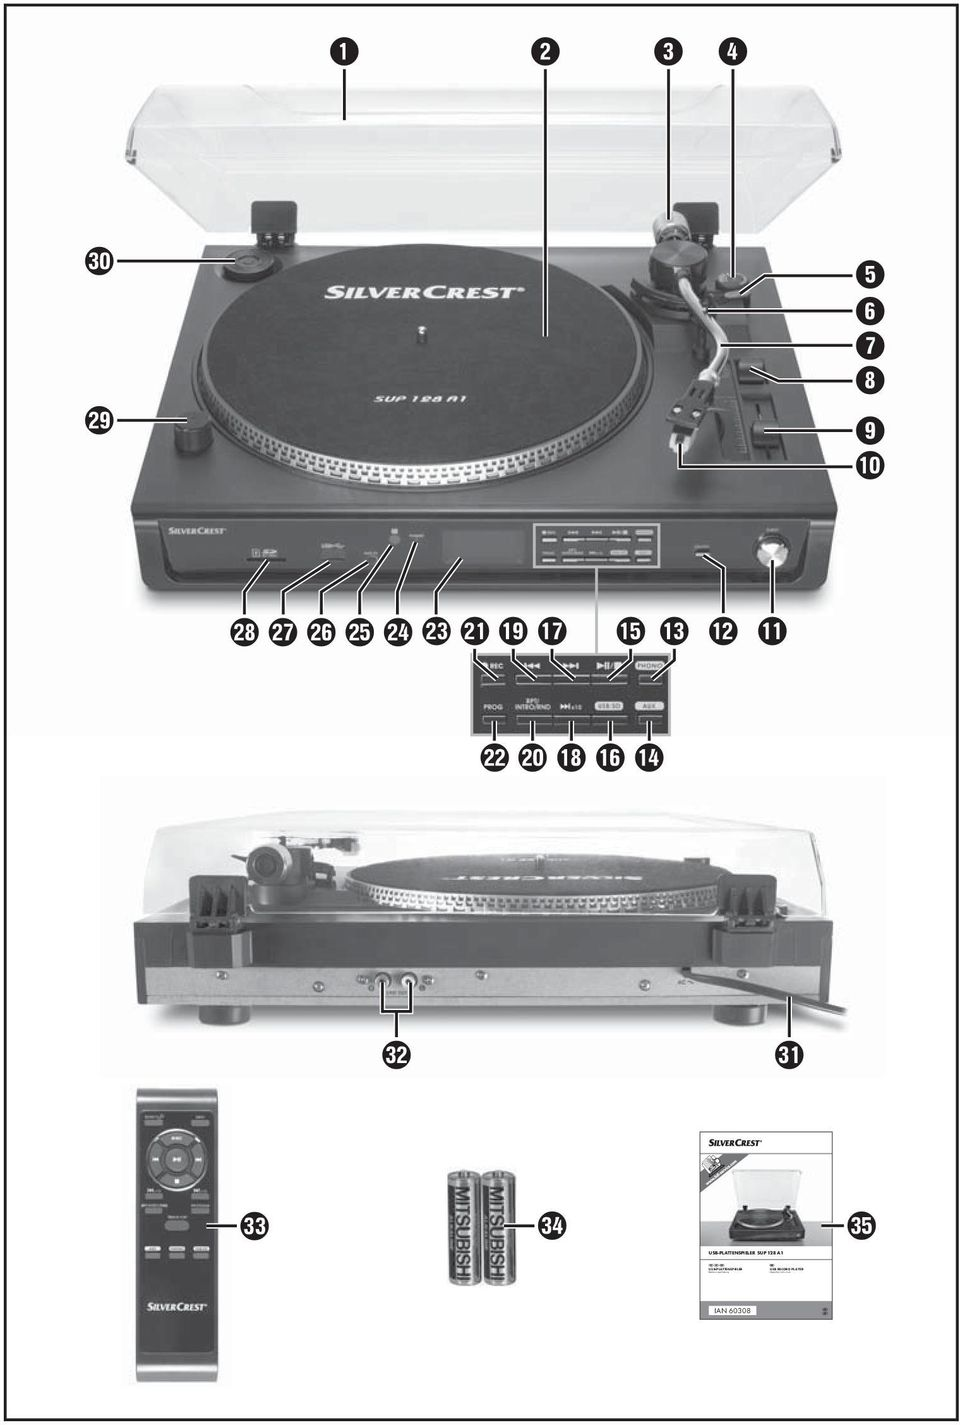 USB RECORD PLAYER Operating